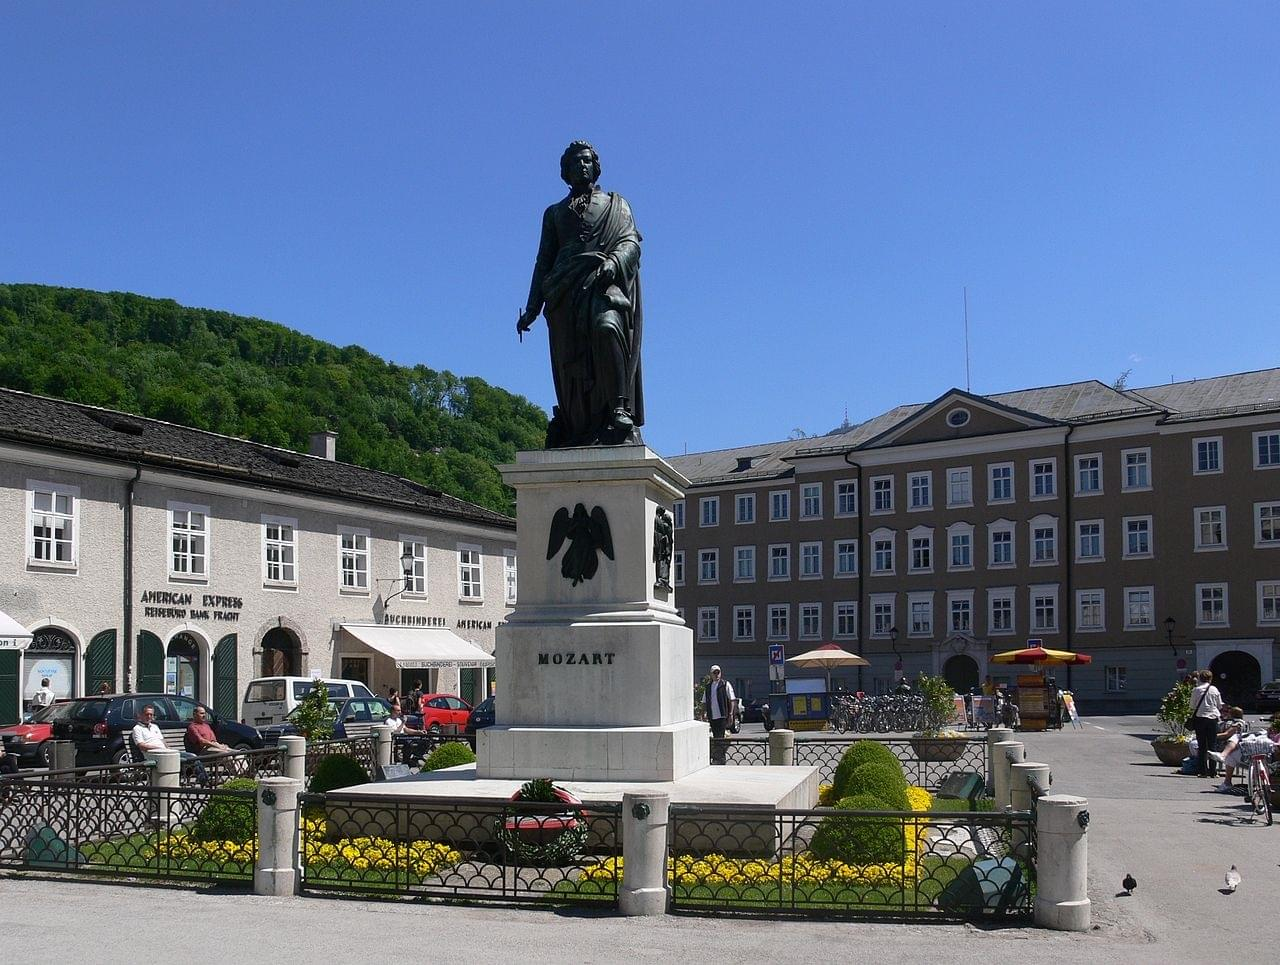 The statue of Mozart